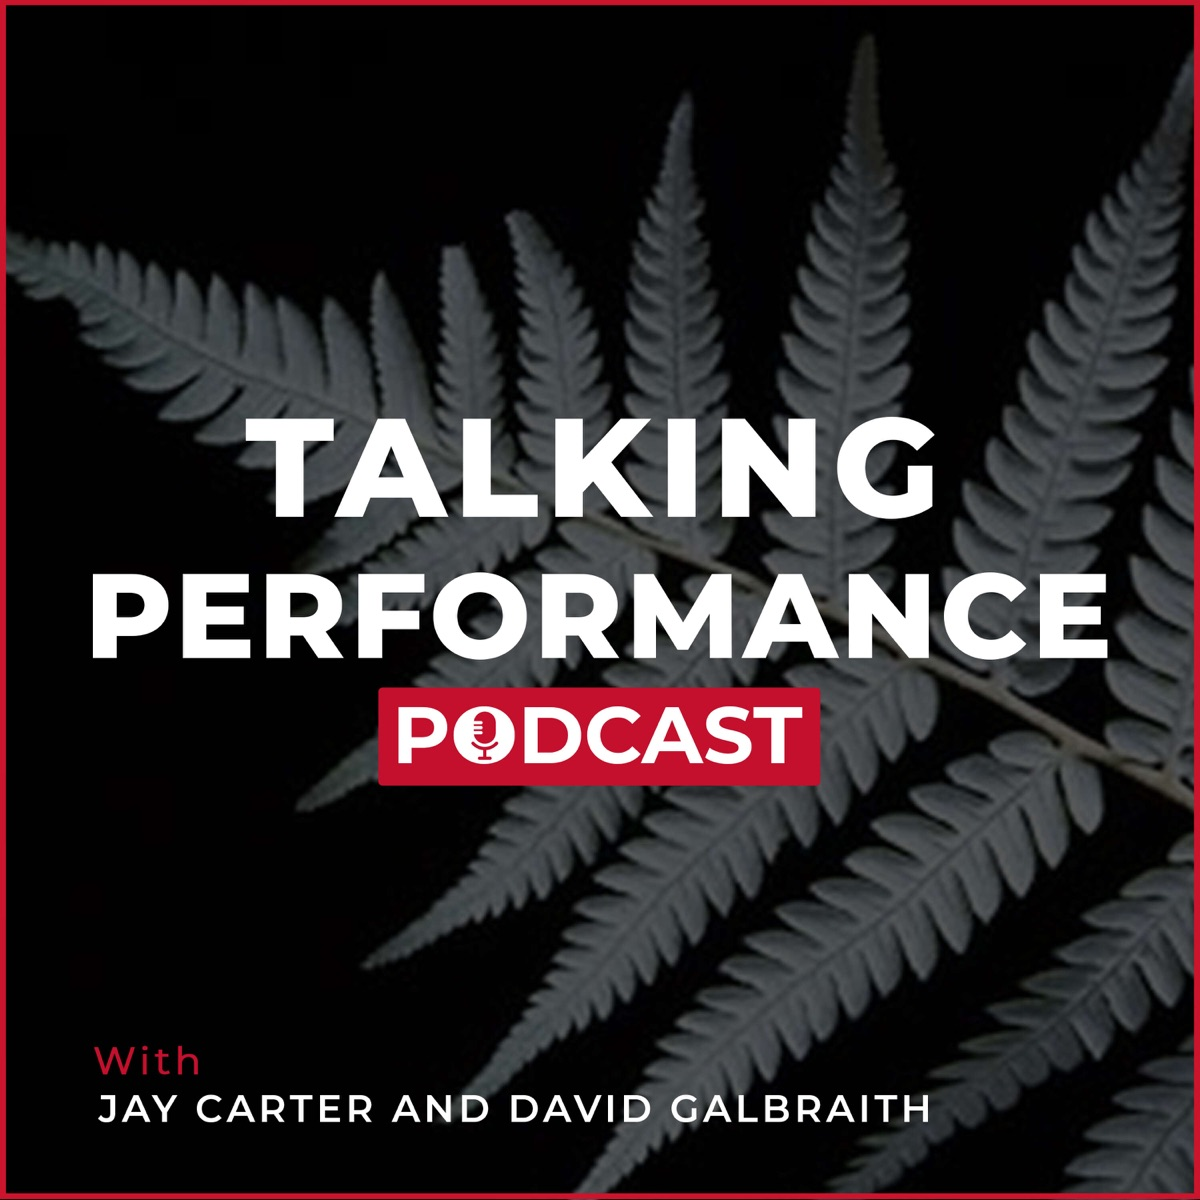 Talking Performance Episode 45 Reflection of Maia Westrupp Session